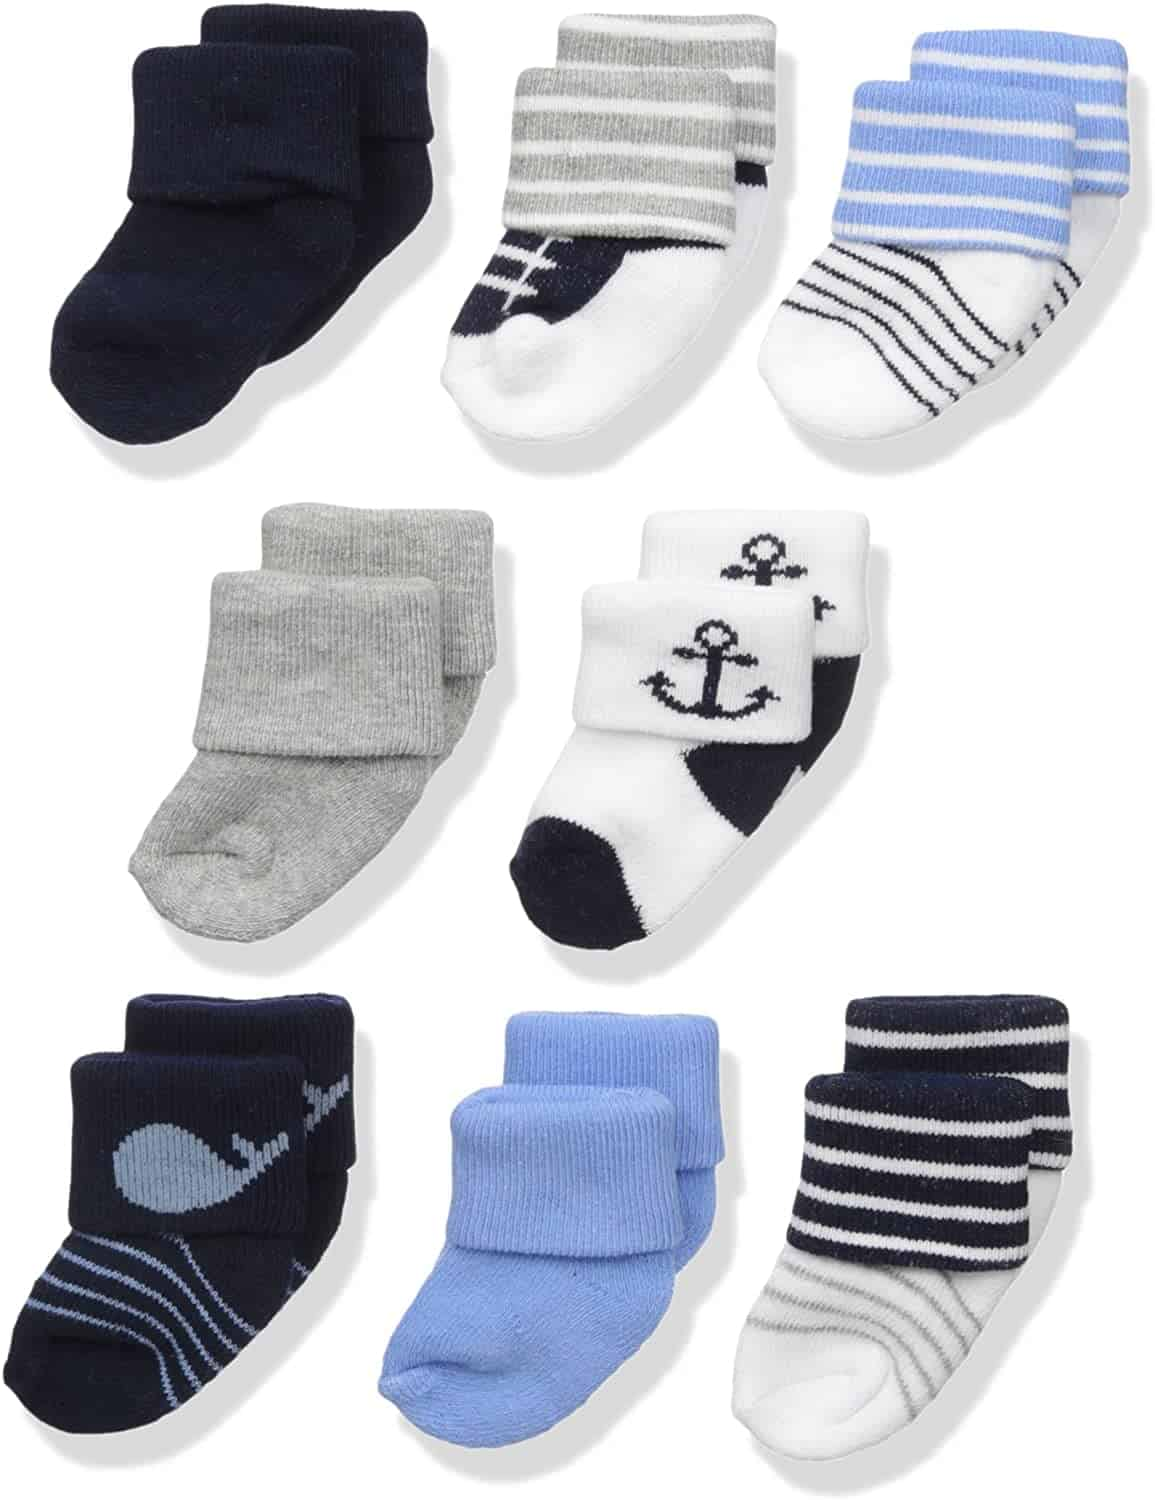 8 pairs of sock for baby with different colors - baby boy gifts